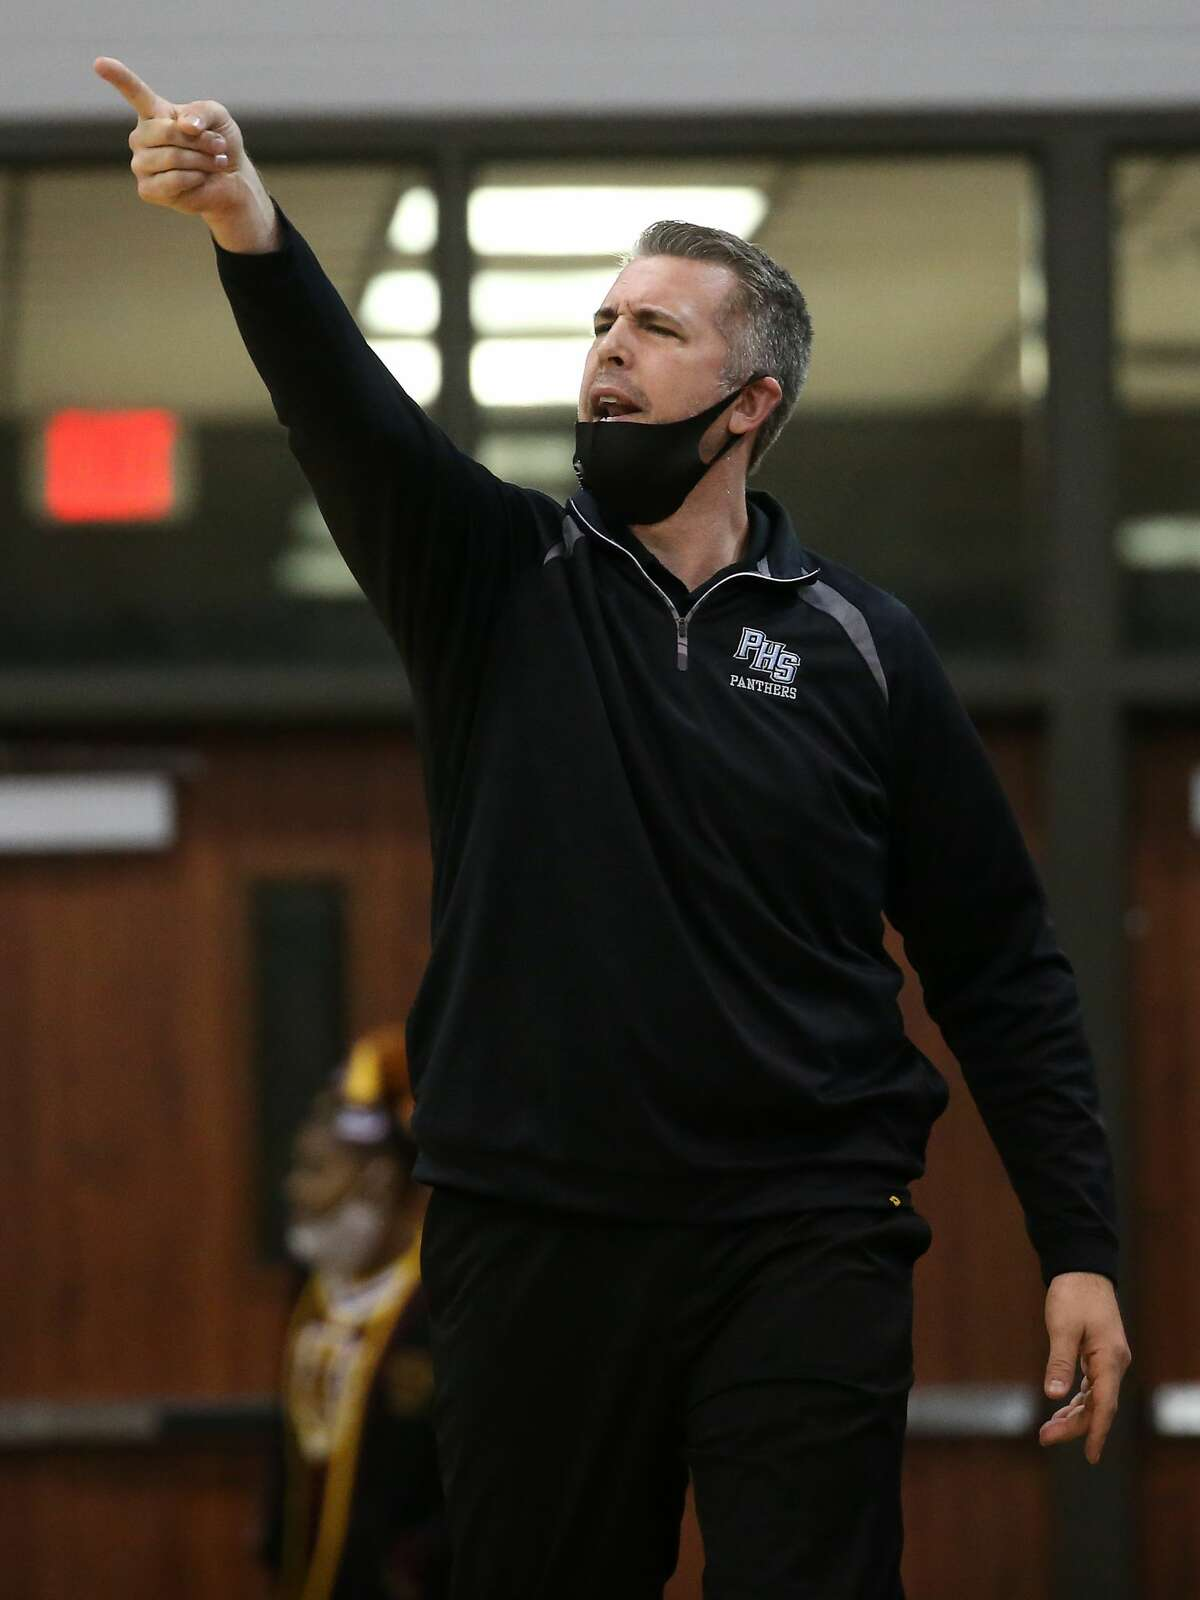 Katy Paetow coach Neimi makes a call from the bench during the first half of the boys Class 5A Region III championship basketball game against Beaumont United at the Campbell Center Friday, March 5, 2021 in Houston.